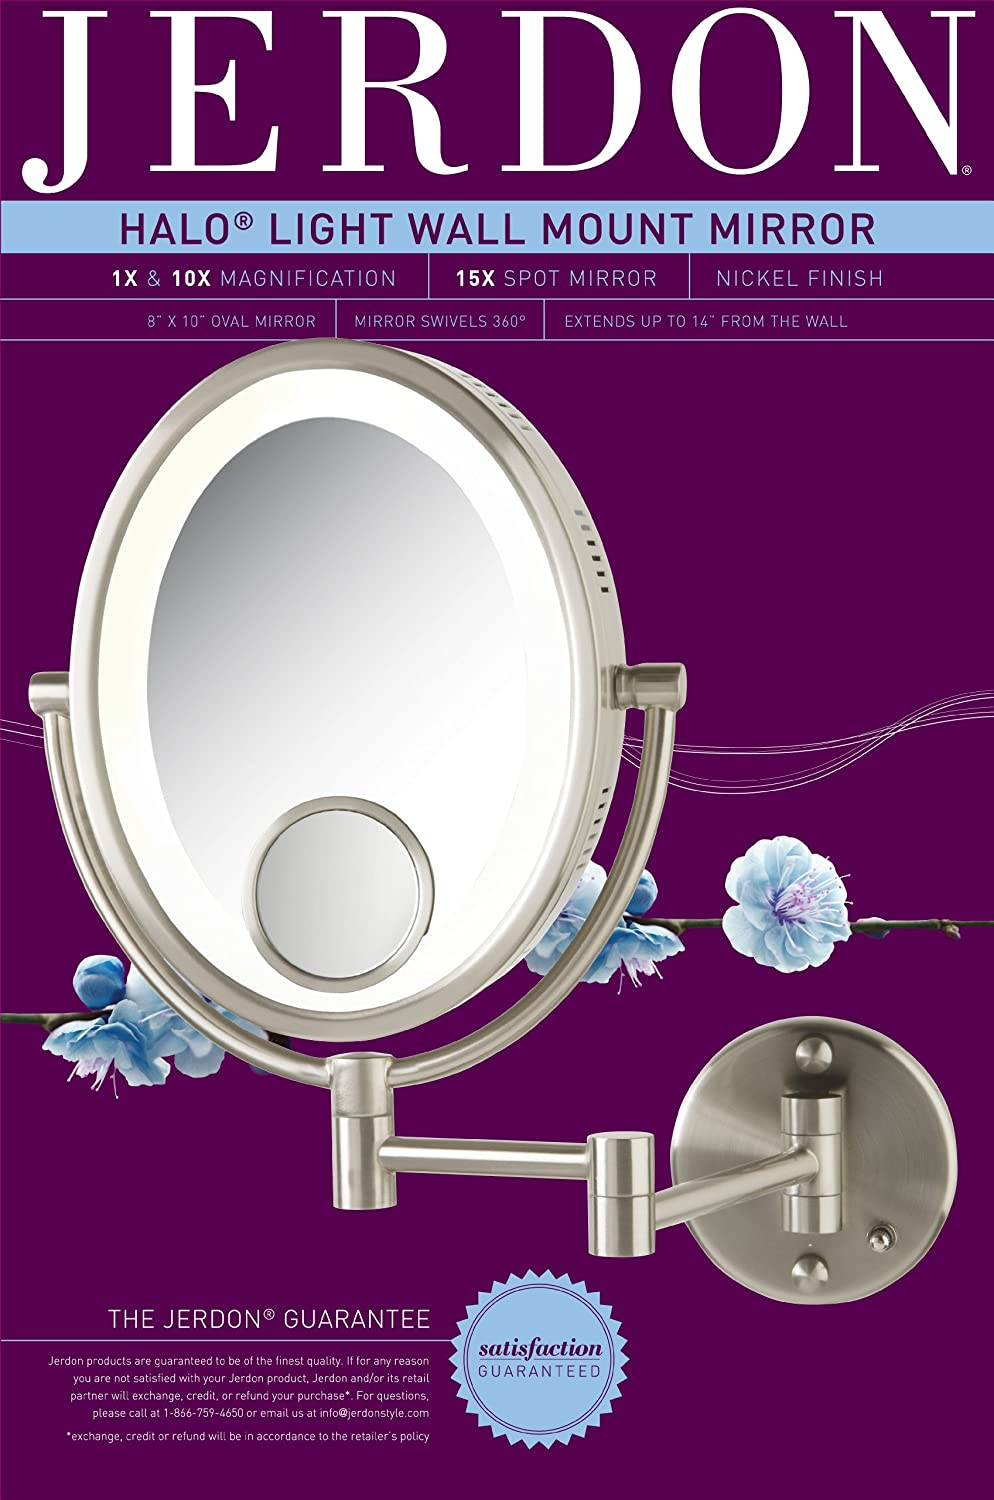 amazon com jerdon hl9515n 8 inch lighted wall mount oval makeup amazon com jerdon hl9515n 8 inch lighted wall mount oval makeup mirror 10x and 15x magnification nickel finish personal makeup mirrors beauty